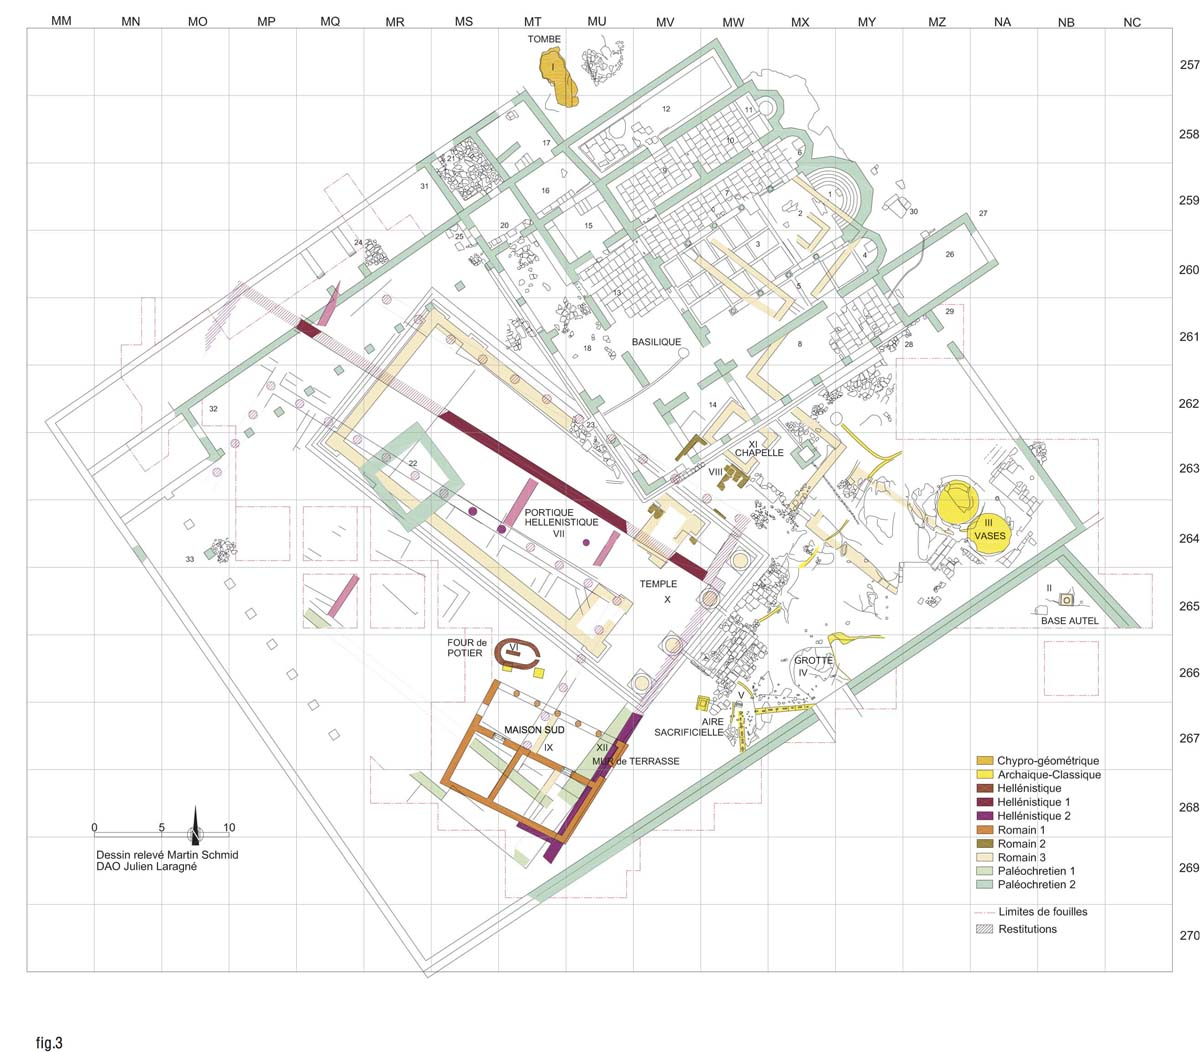 Ground plan of the sanctuary (M. Schmid, J. Laragné / Archives EFA, 42009)